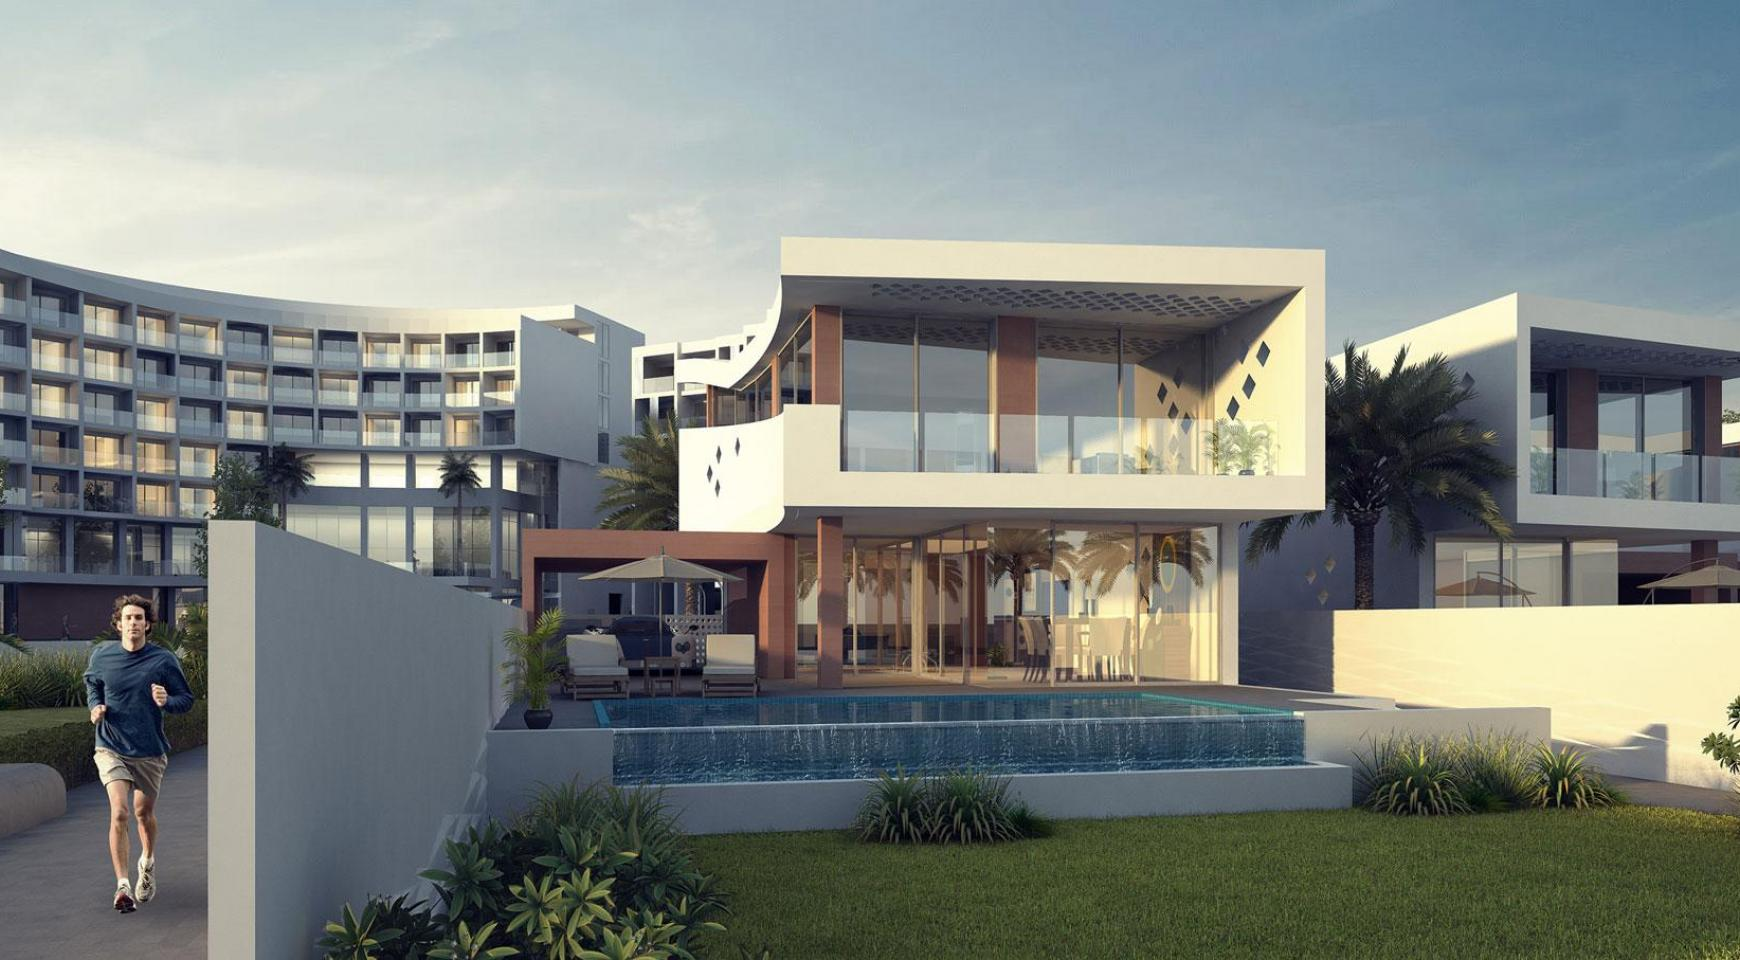 4 Bedroom Villa in a New Project by the Sea - 4